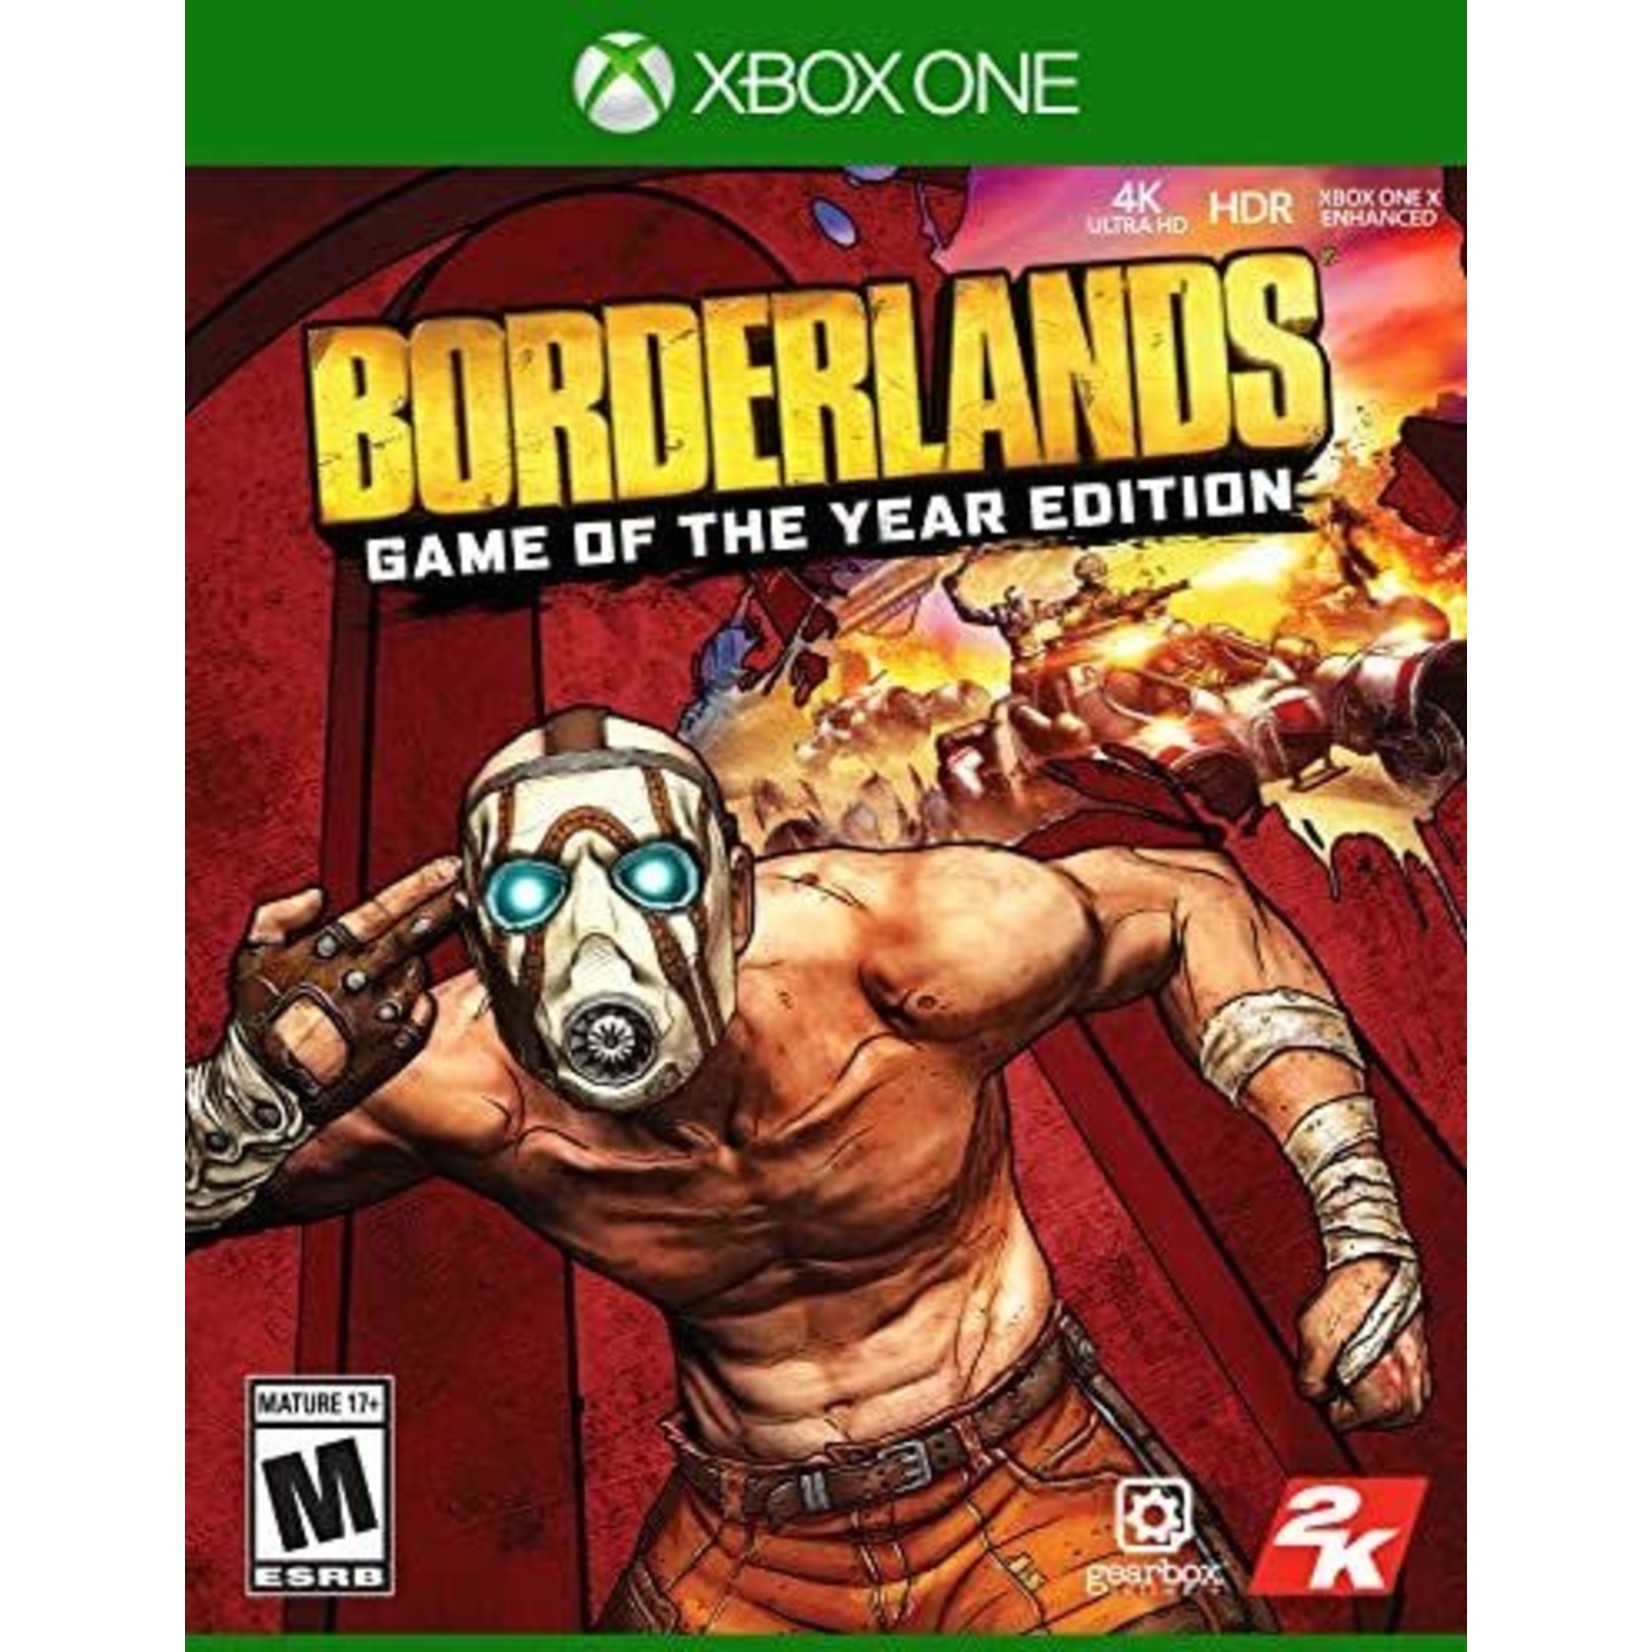 XB1U-Borderlands: Game of the Year Edition